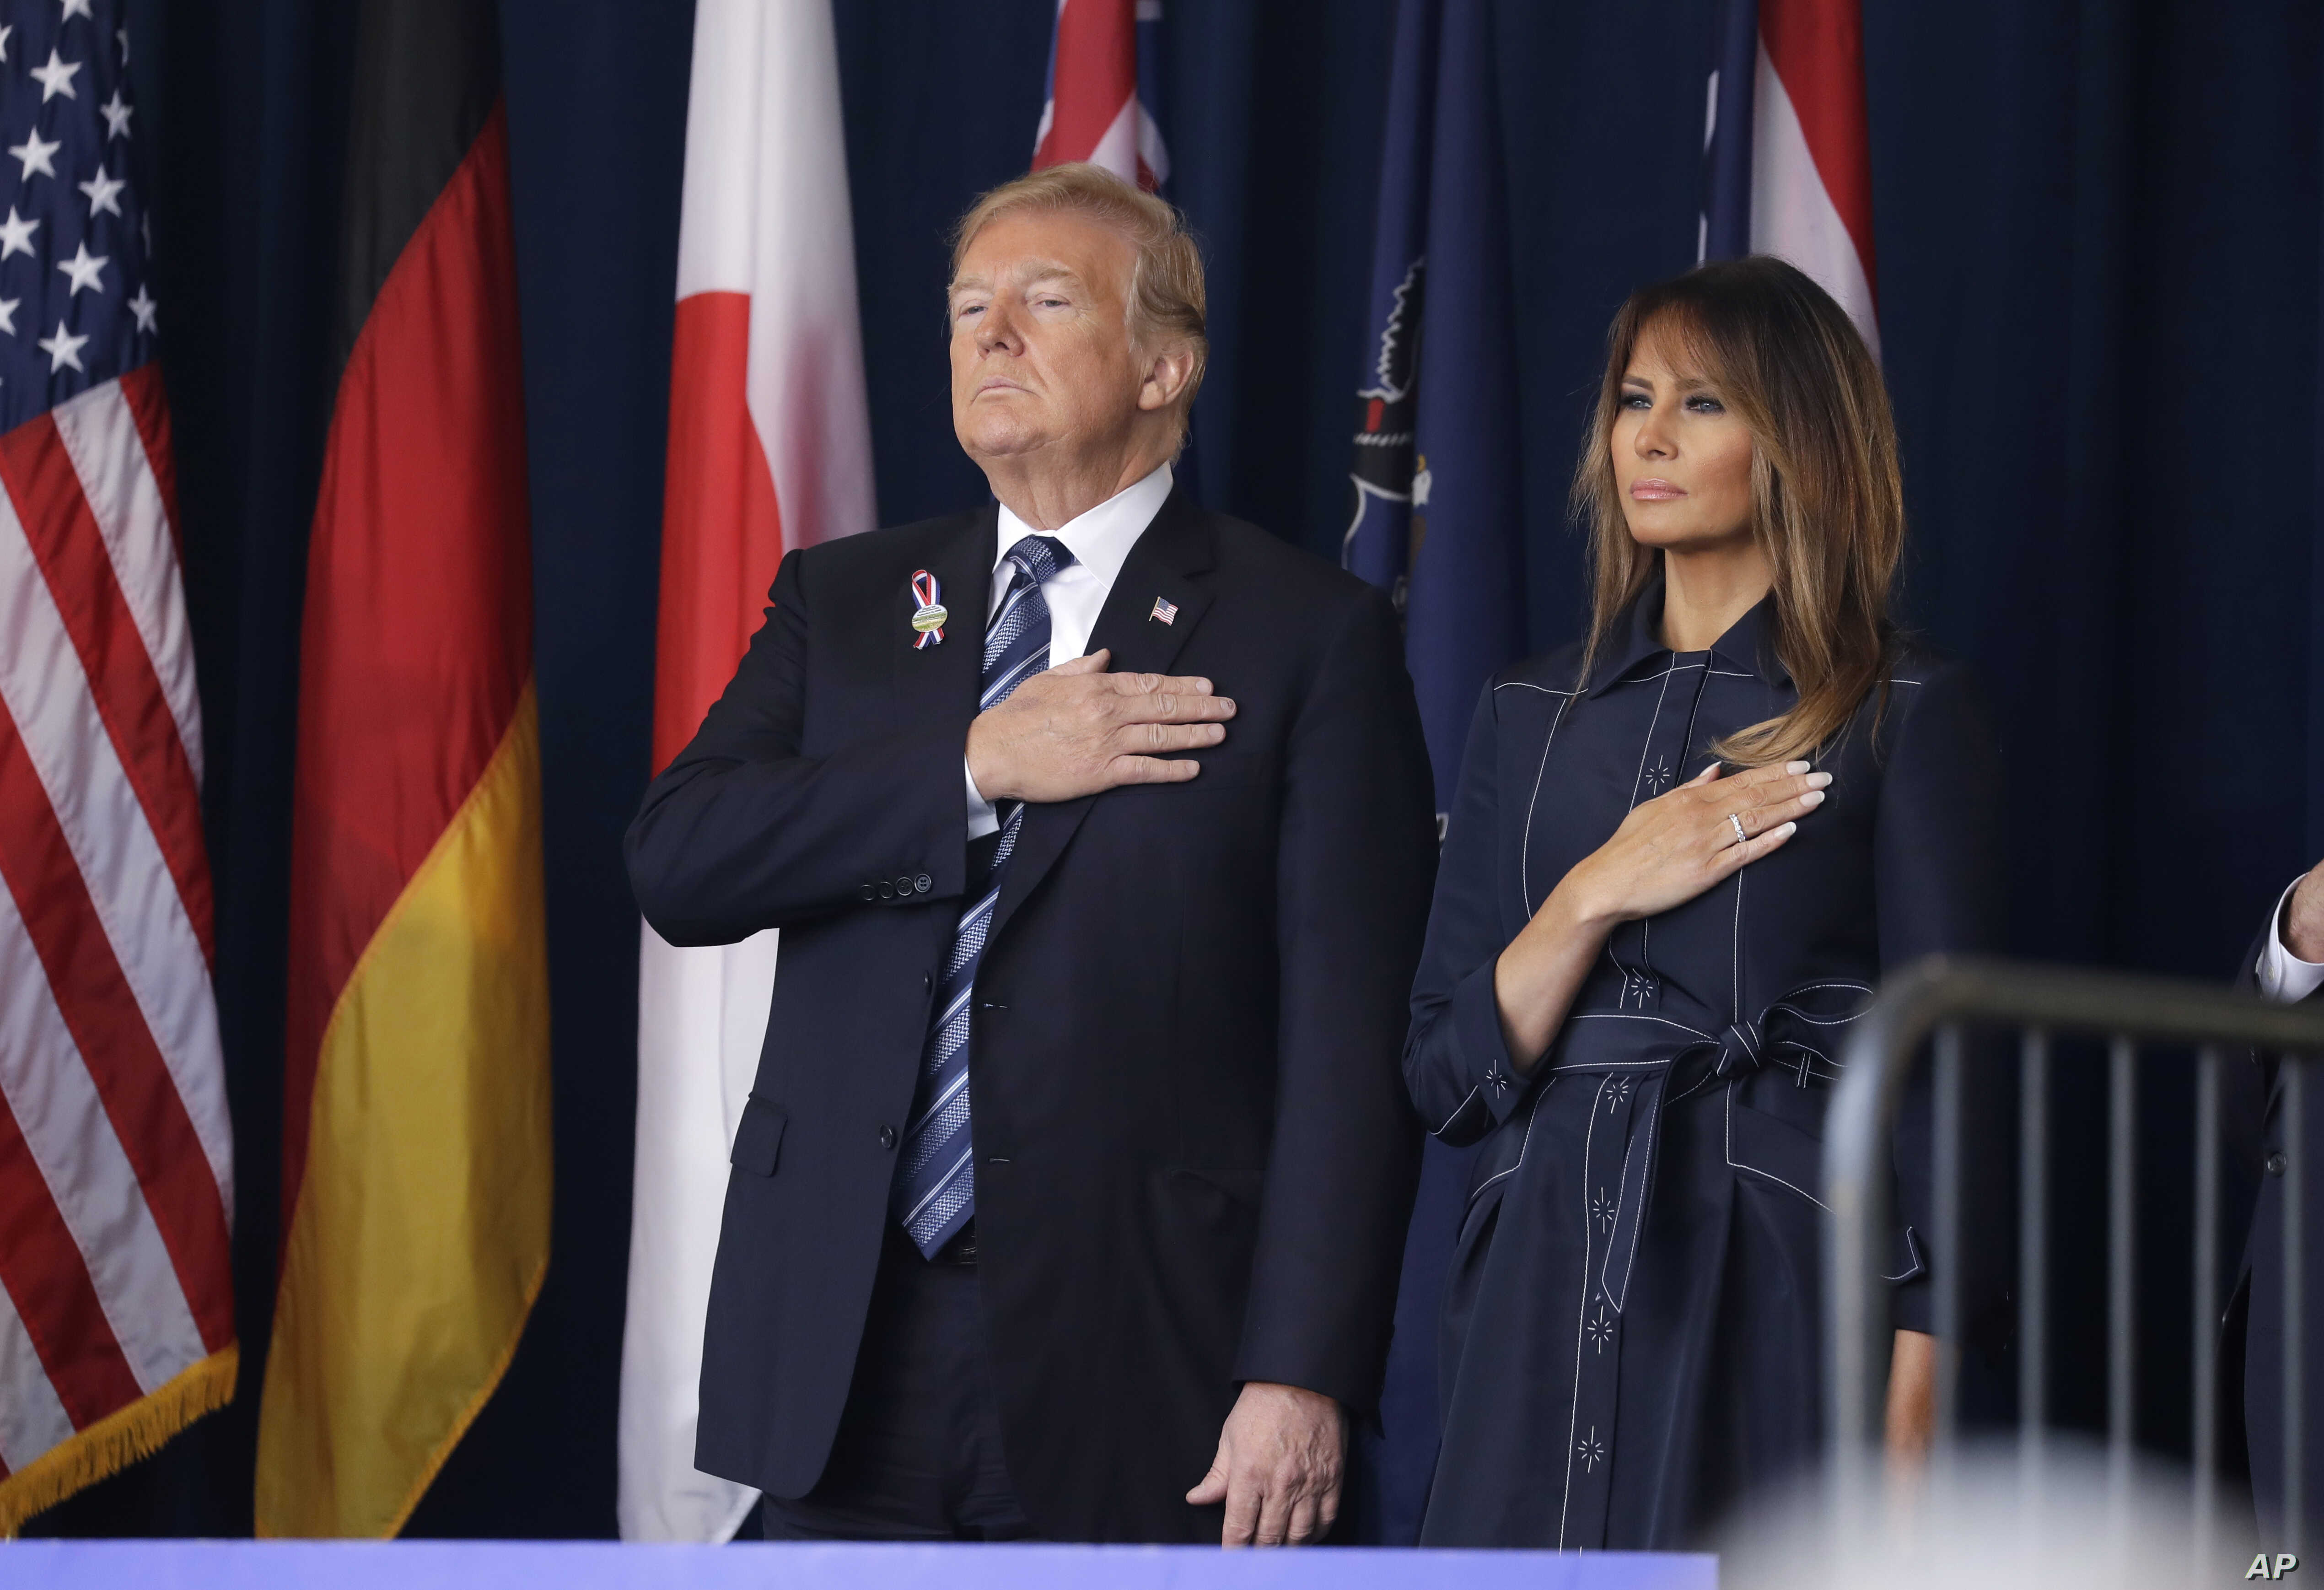 President Donald Trump and first lady Melania Trump participate in the September 11th Flight 93 Memorial Service, Sept. 11, 2018, in Shanksville, Pa.